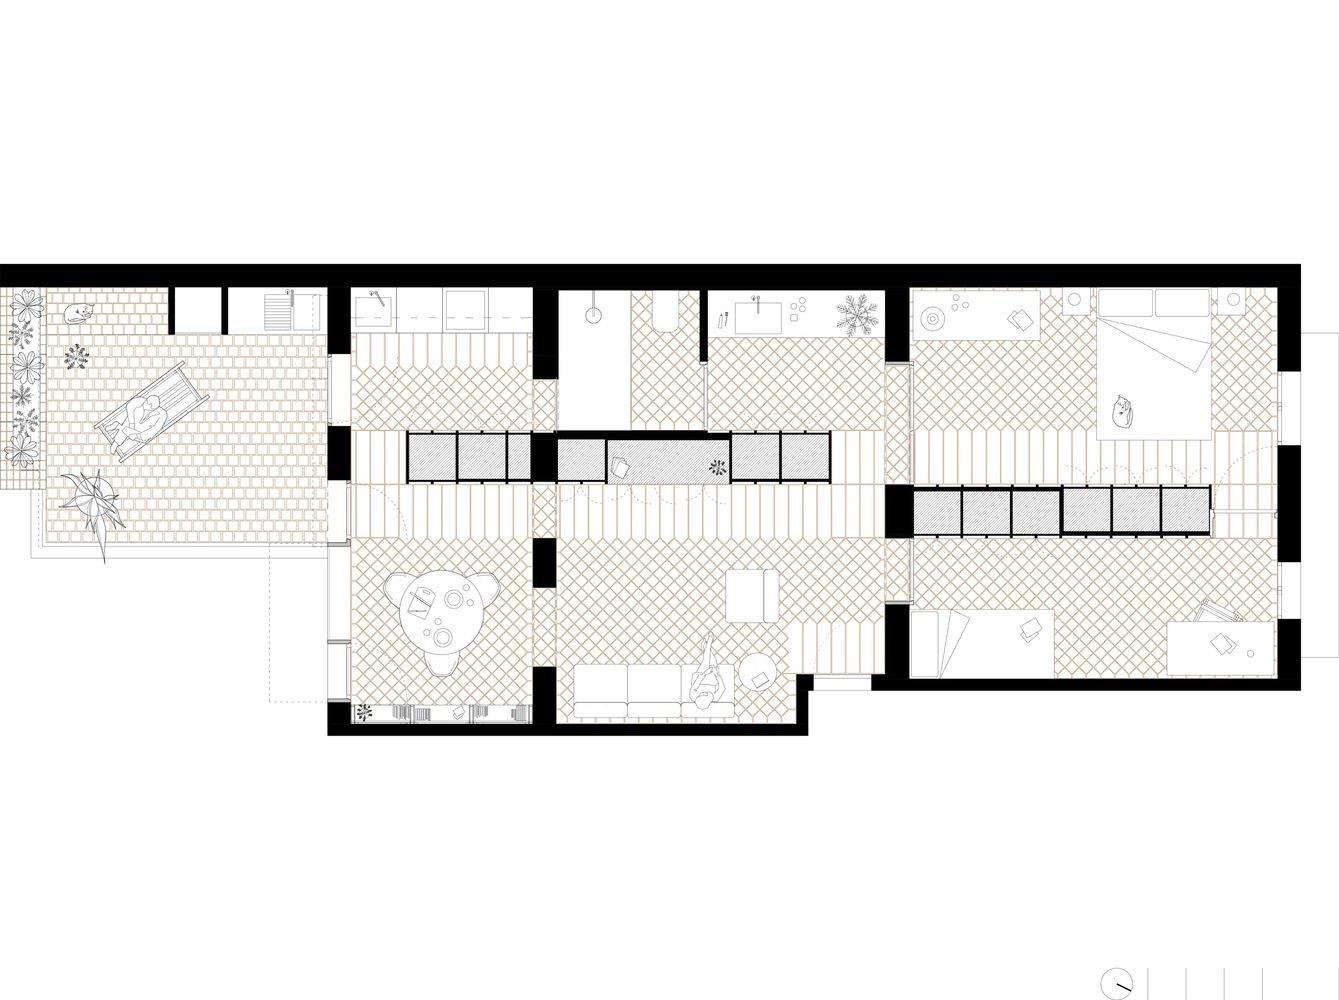 1339x1000 Gallery Of Huguet Apartment Ted'a Arquitectes